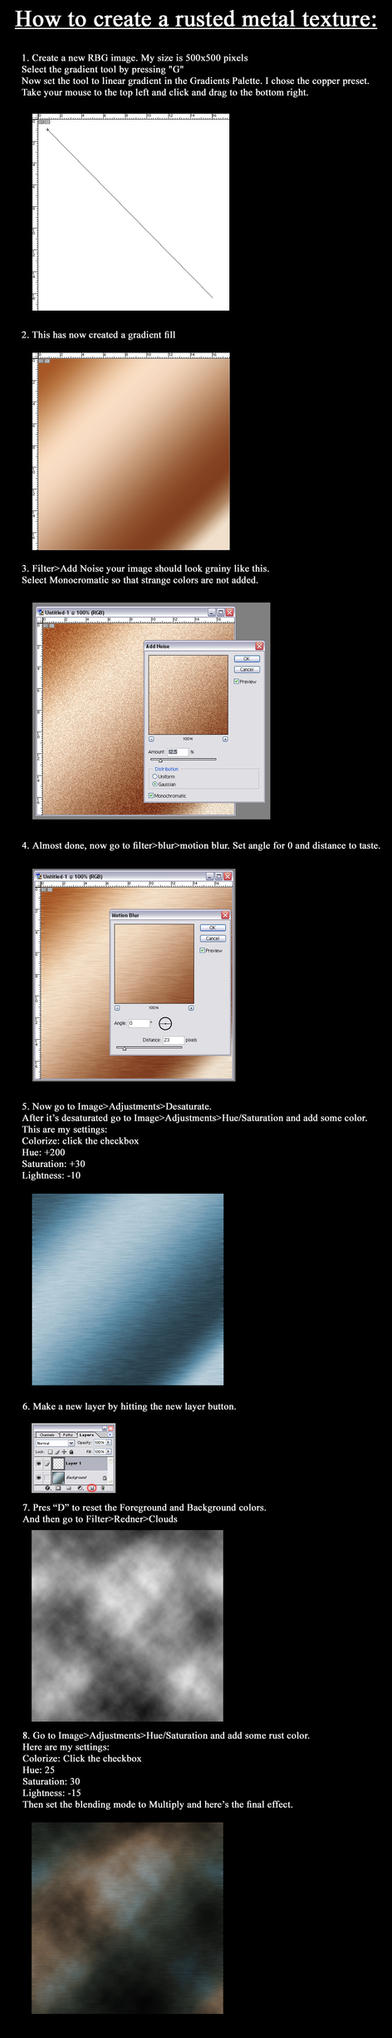 Rusted metal texture tutorial by Unwanted83